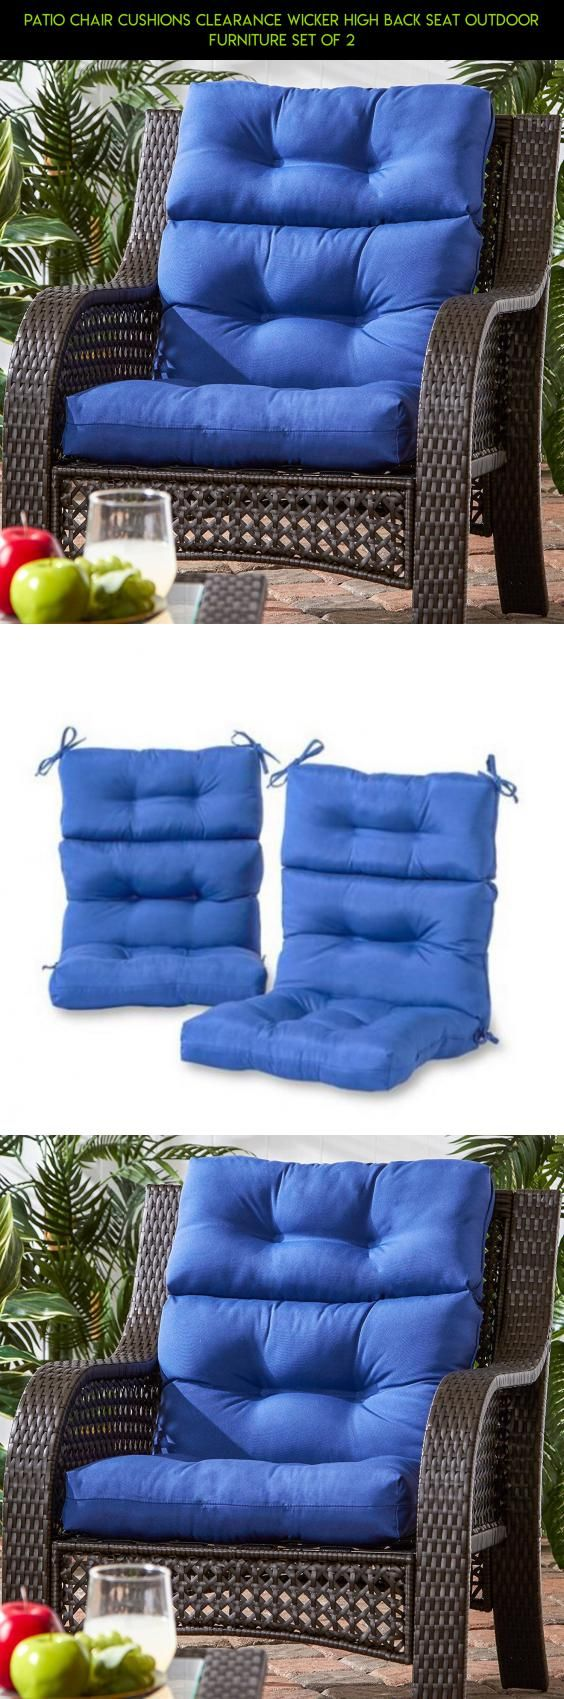 Perfect Patio Chair Cushions Clearance Wicker High Back Seat Outdoor Furniture Set  Of 2 #plans #